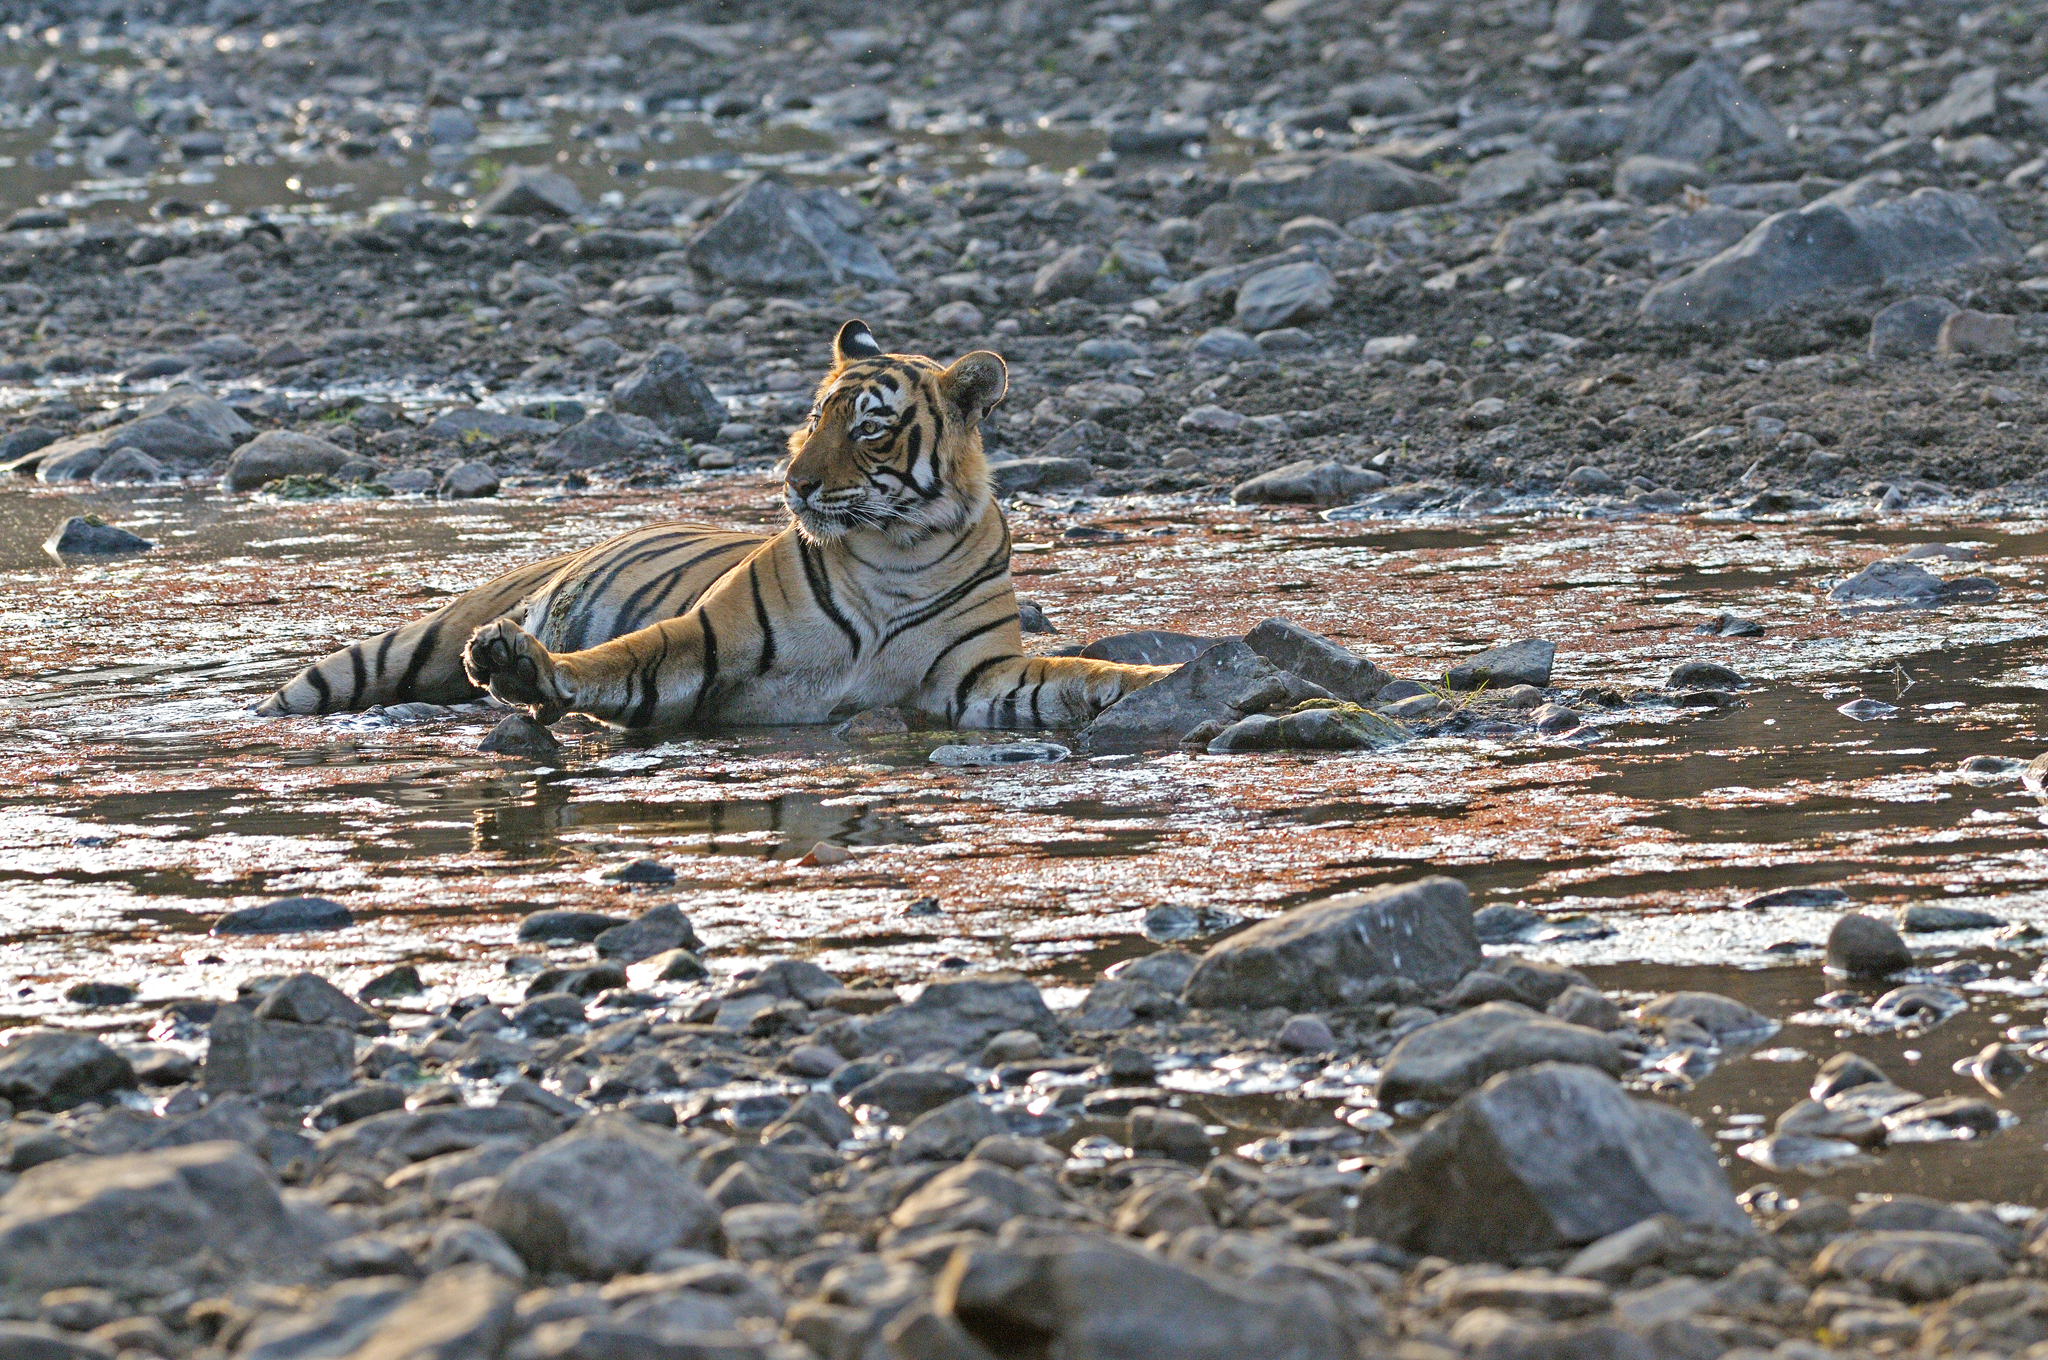 Tiger - Ranthambore - India - Rich Lindi